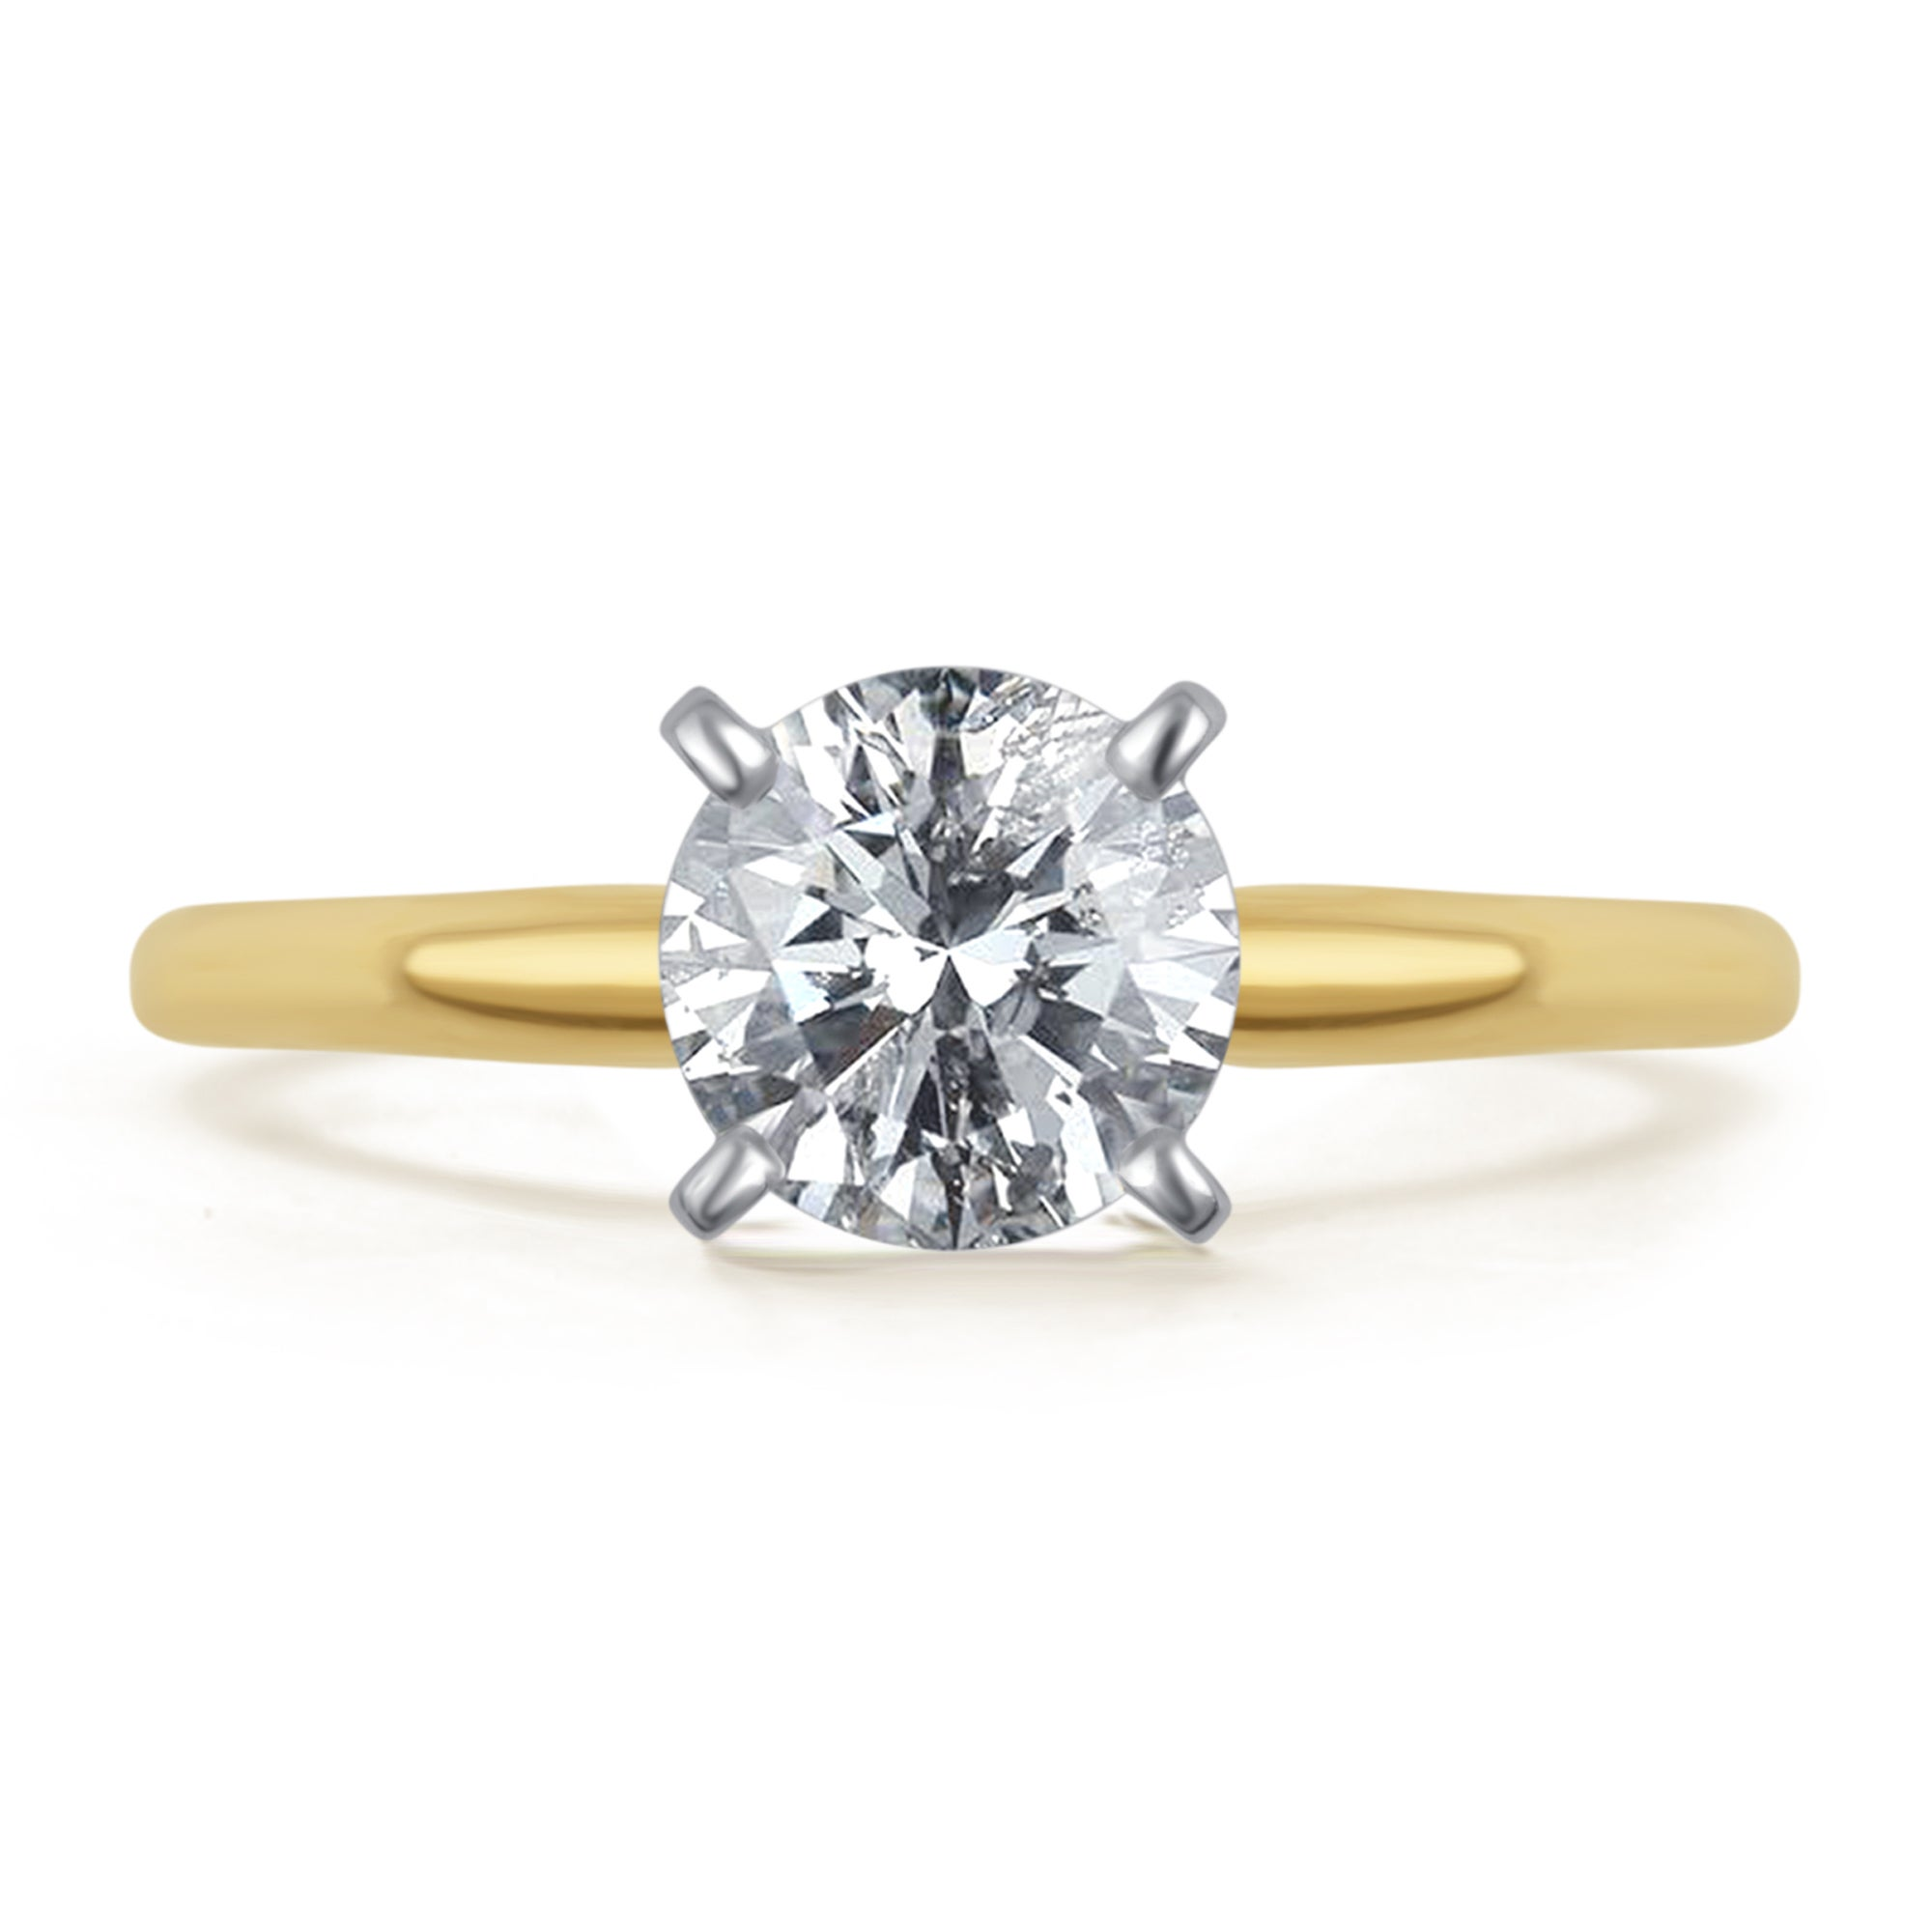 polkadot solitaire engagement diamond ring gallery forwebsolitaire jewellery products